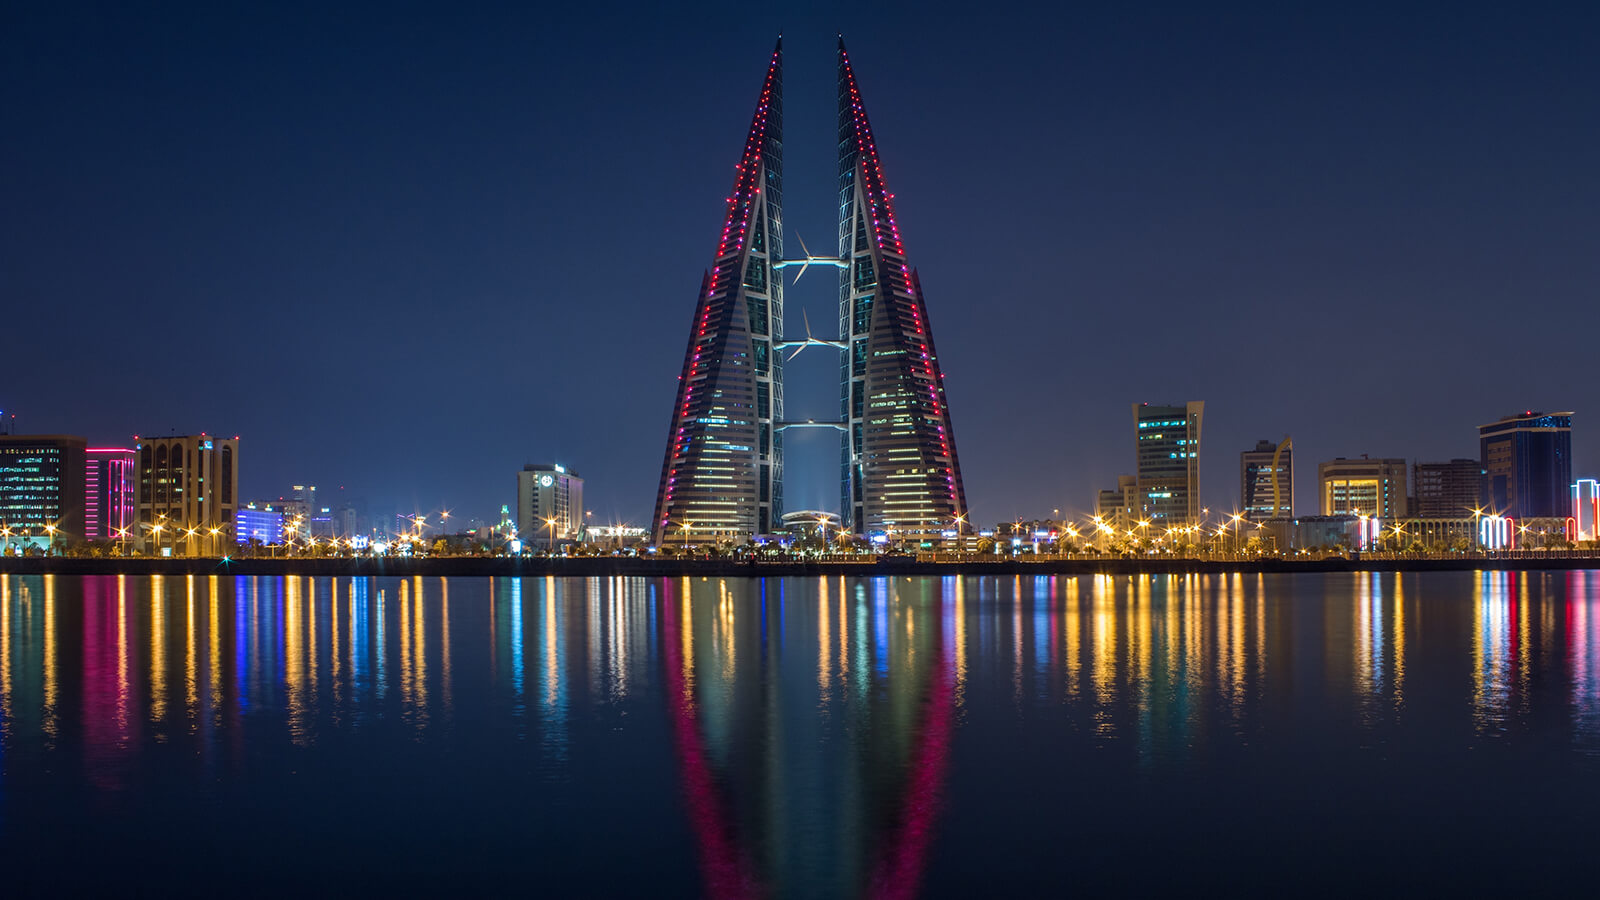 World Trade Center in Manama, Bahrain